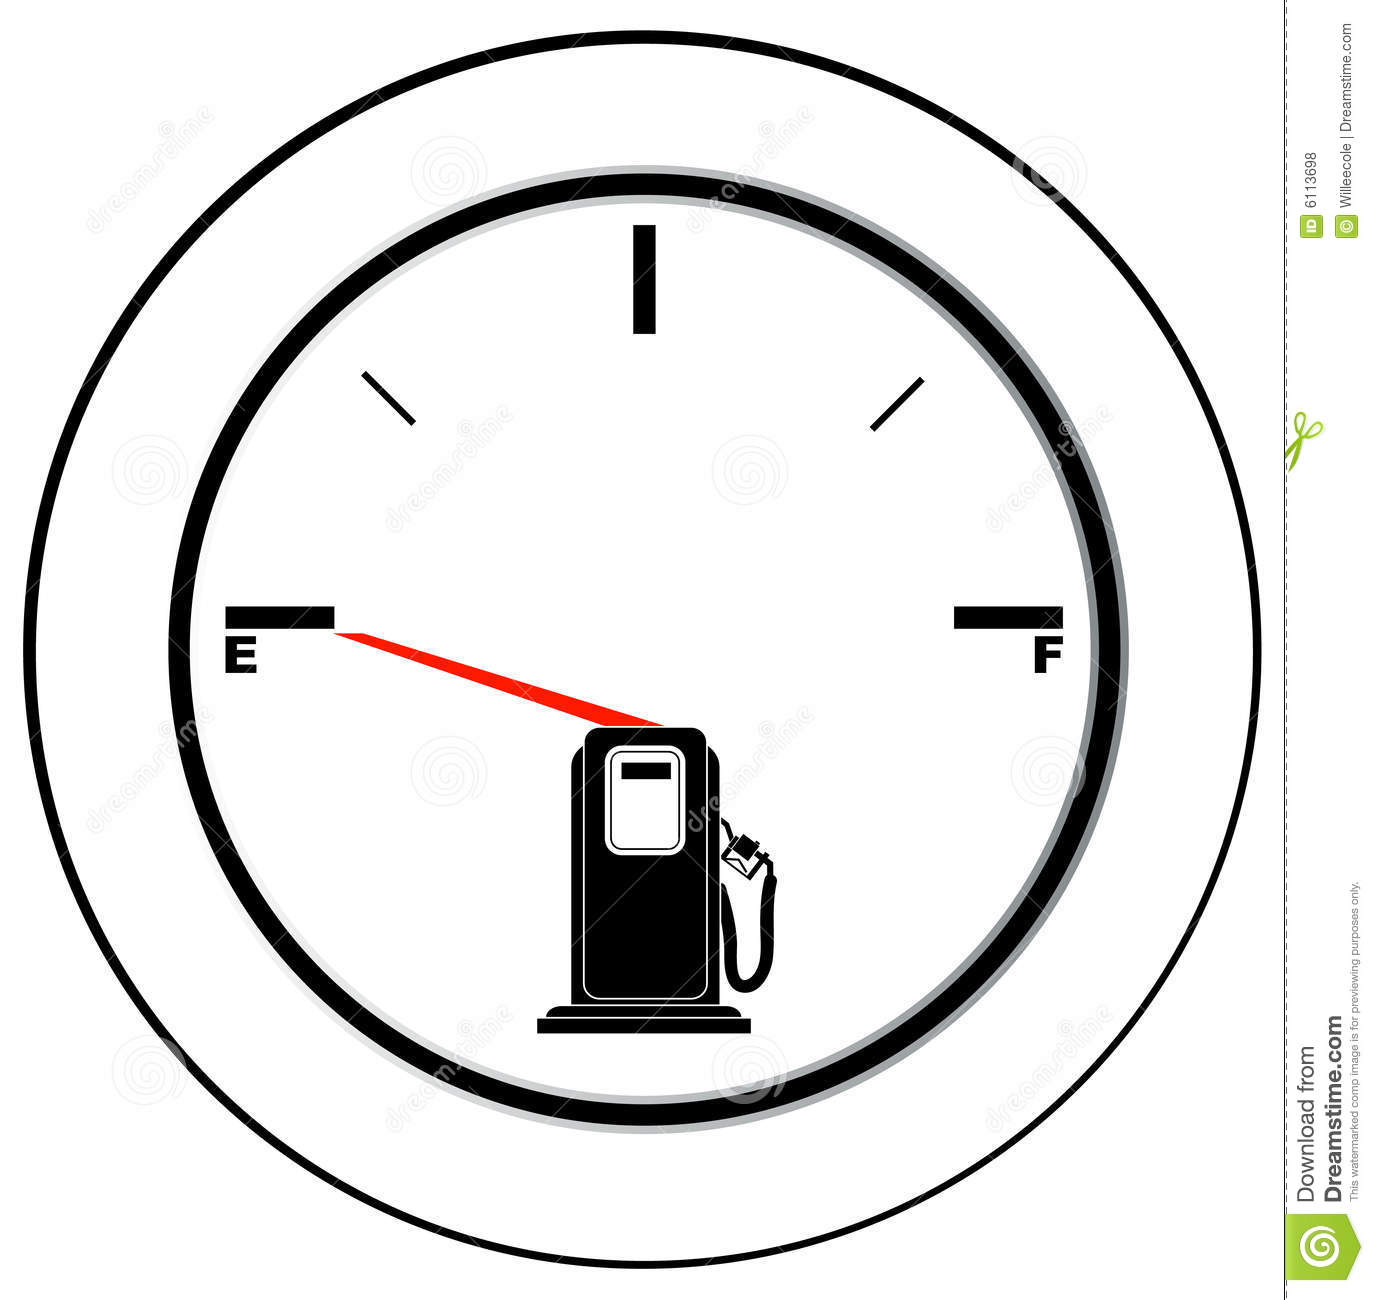 Empty Fuel Gauge Stock Vector Illustration Of